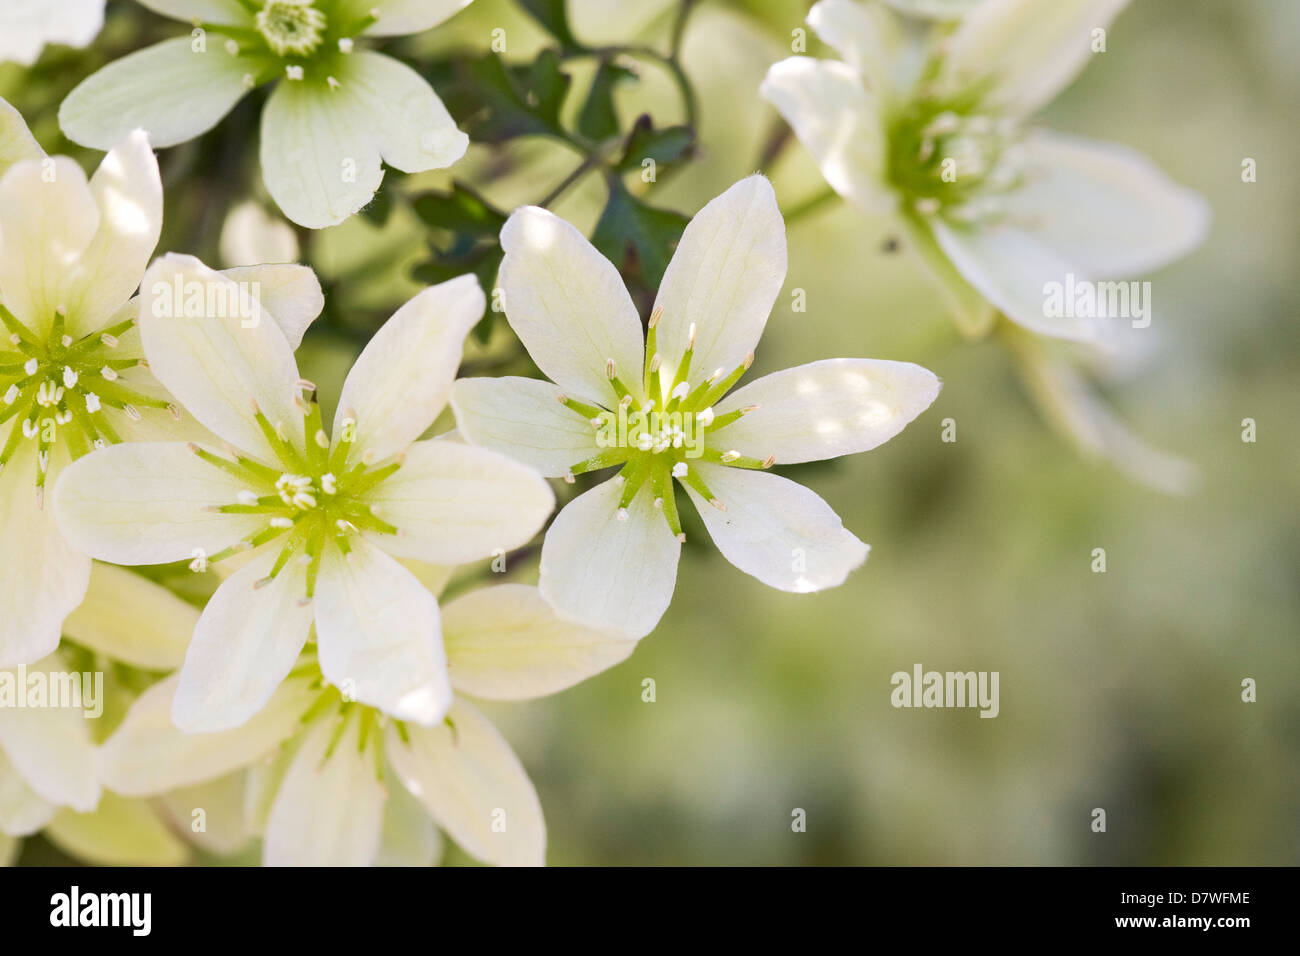 Spring flowering clematis stock photos spring flowering clematis evergreen spring flowering clematis mightylinksfo Gallery